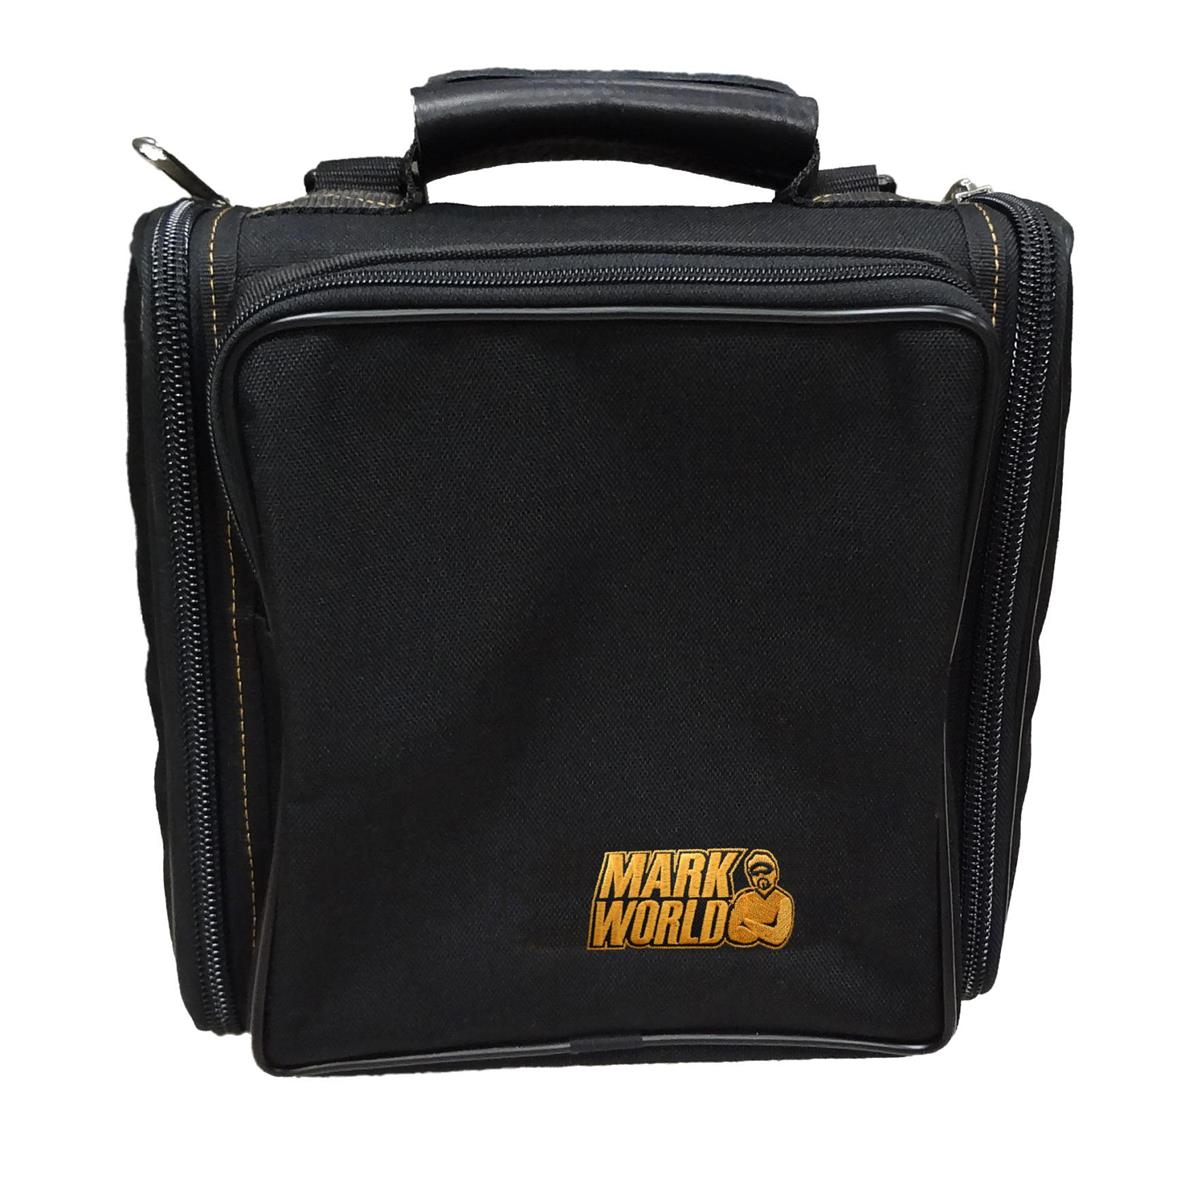 DV MARK MARKWORLD Bag S  - big bang Bag - little Gh 250 / little 250 M Bag -  COVER